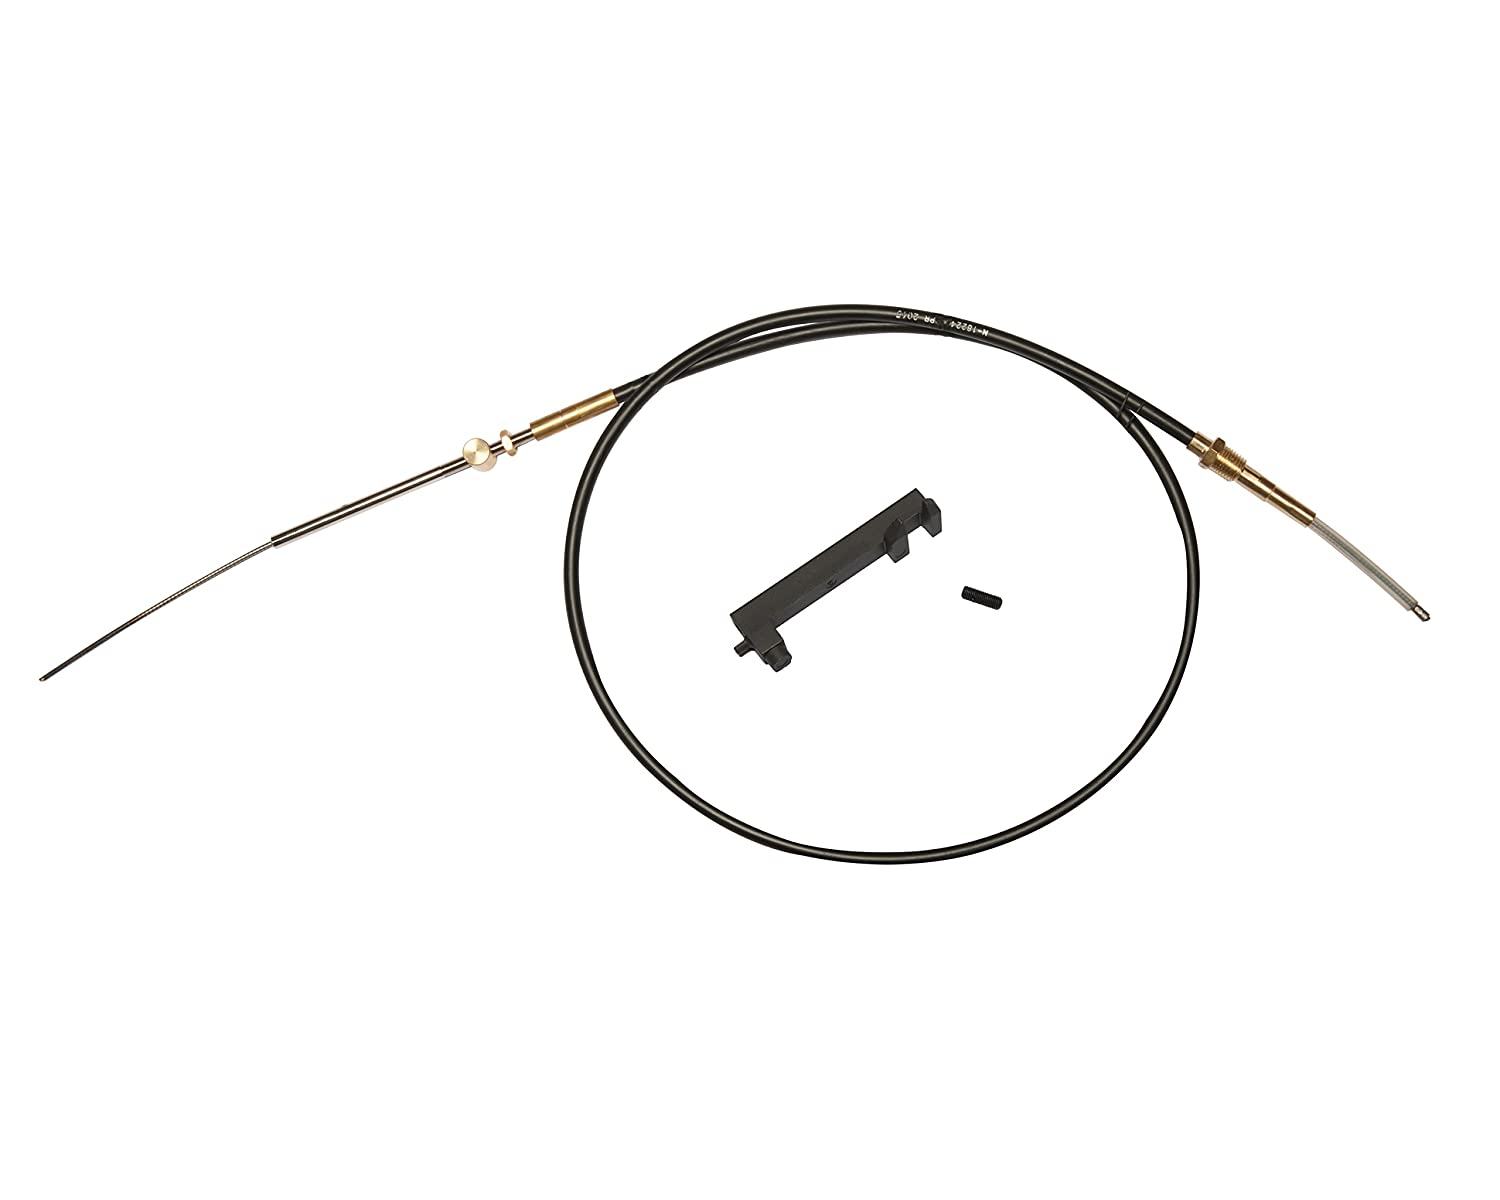 Sierra International 18-2248 Marine Shift Cable Assembly for Mercruiser Stern Drive